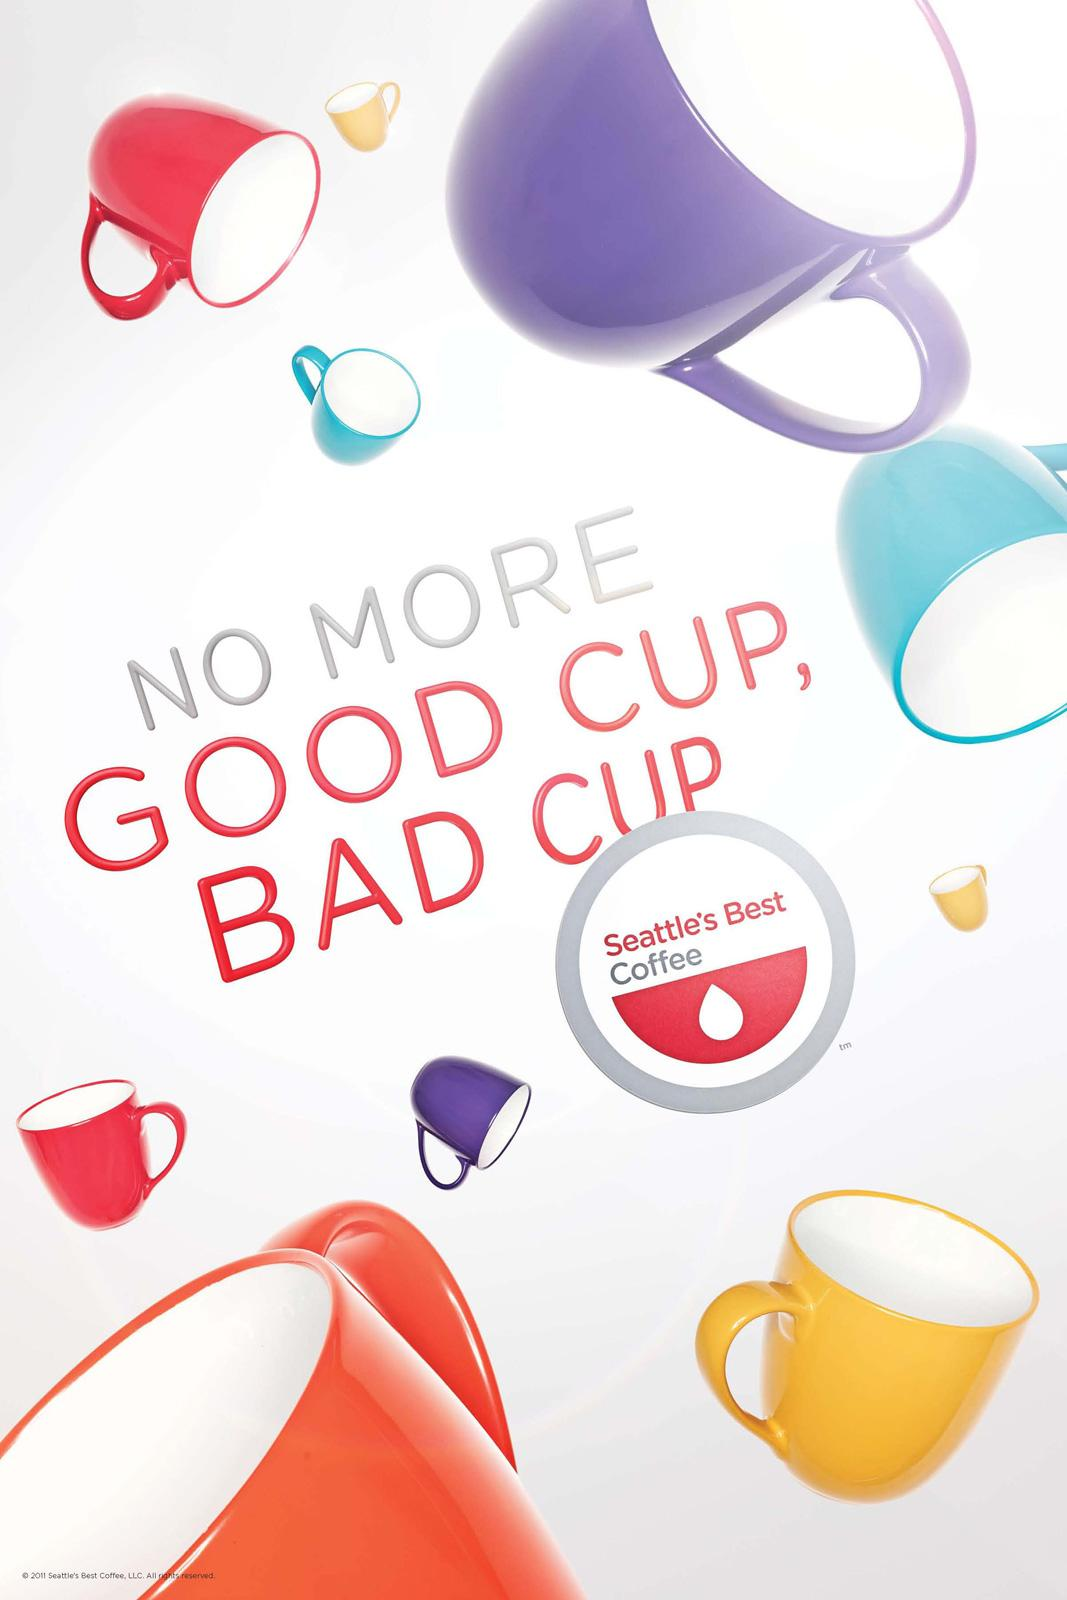 Seattle's Best Coffee Outdoor Ad -  No more good cup, bad cup